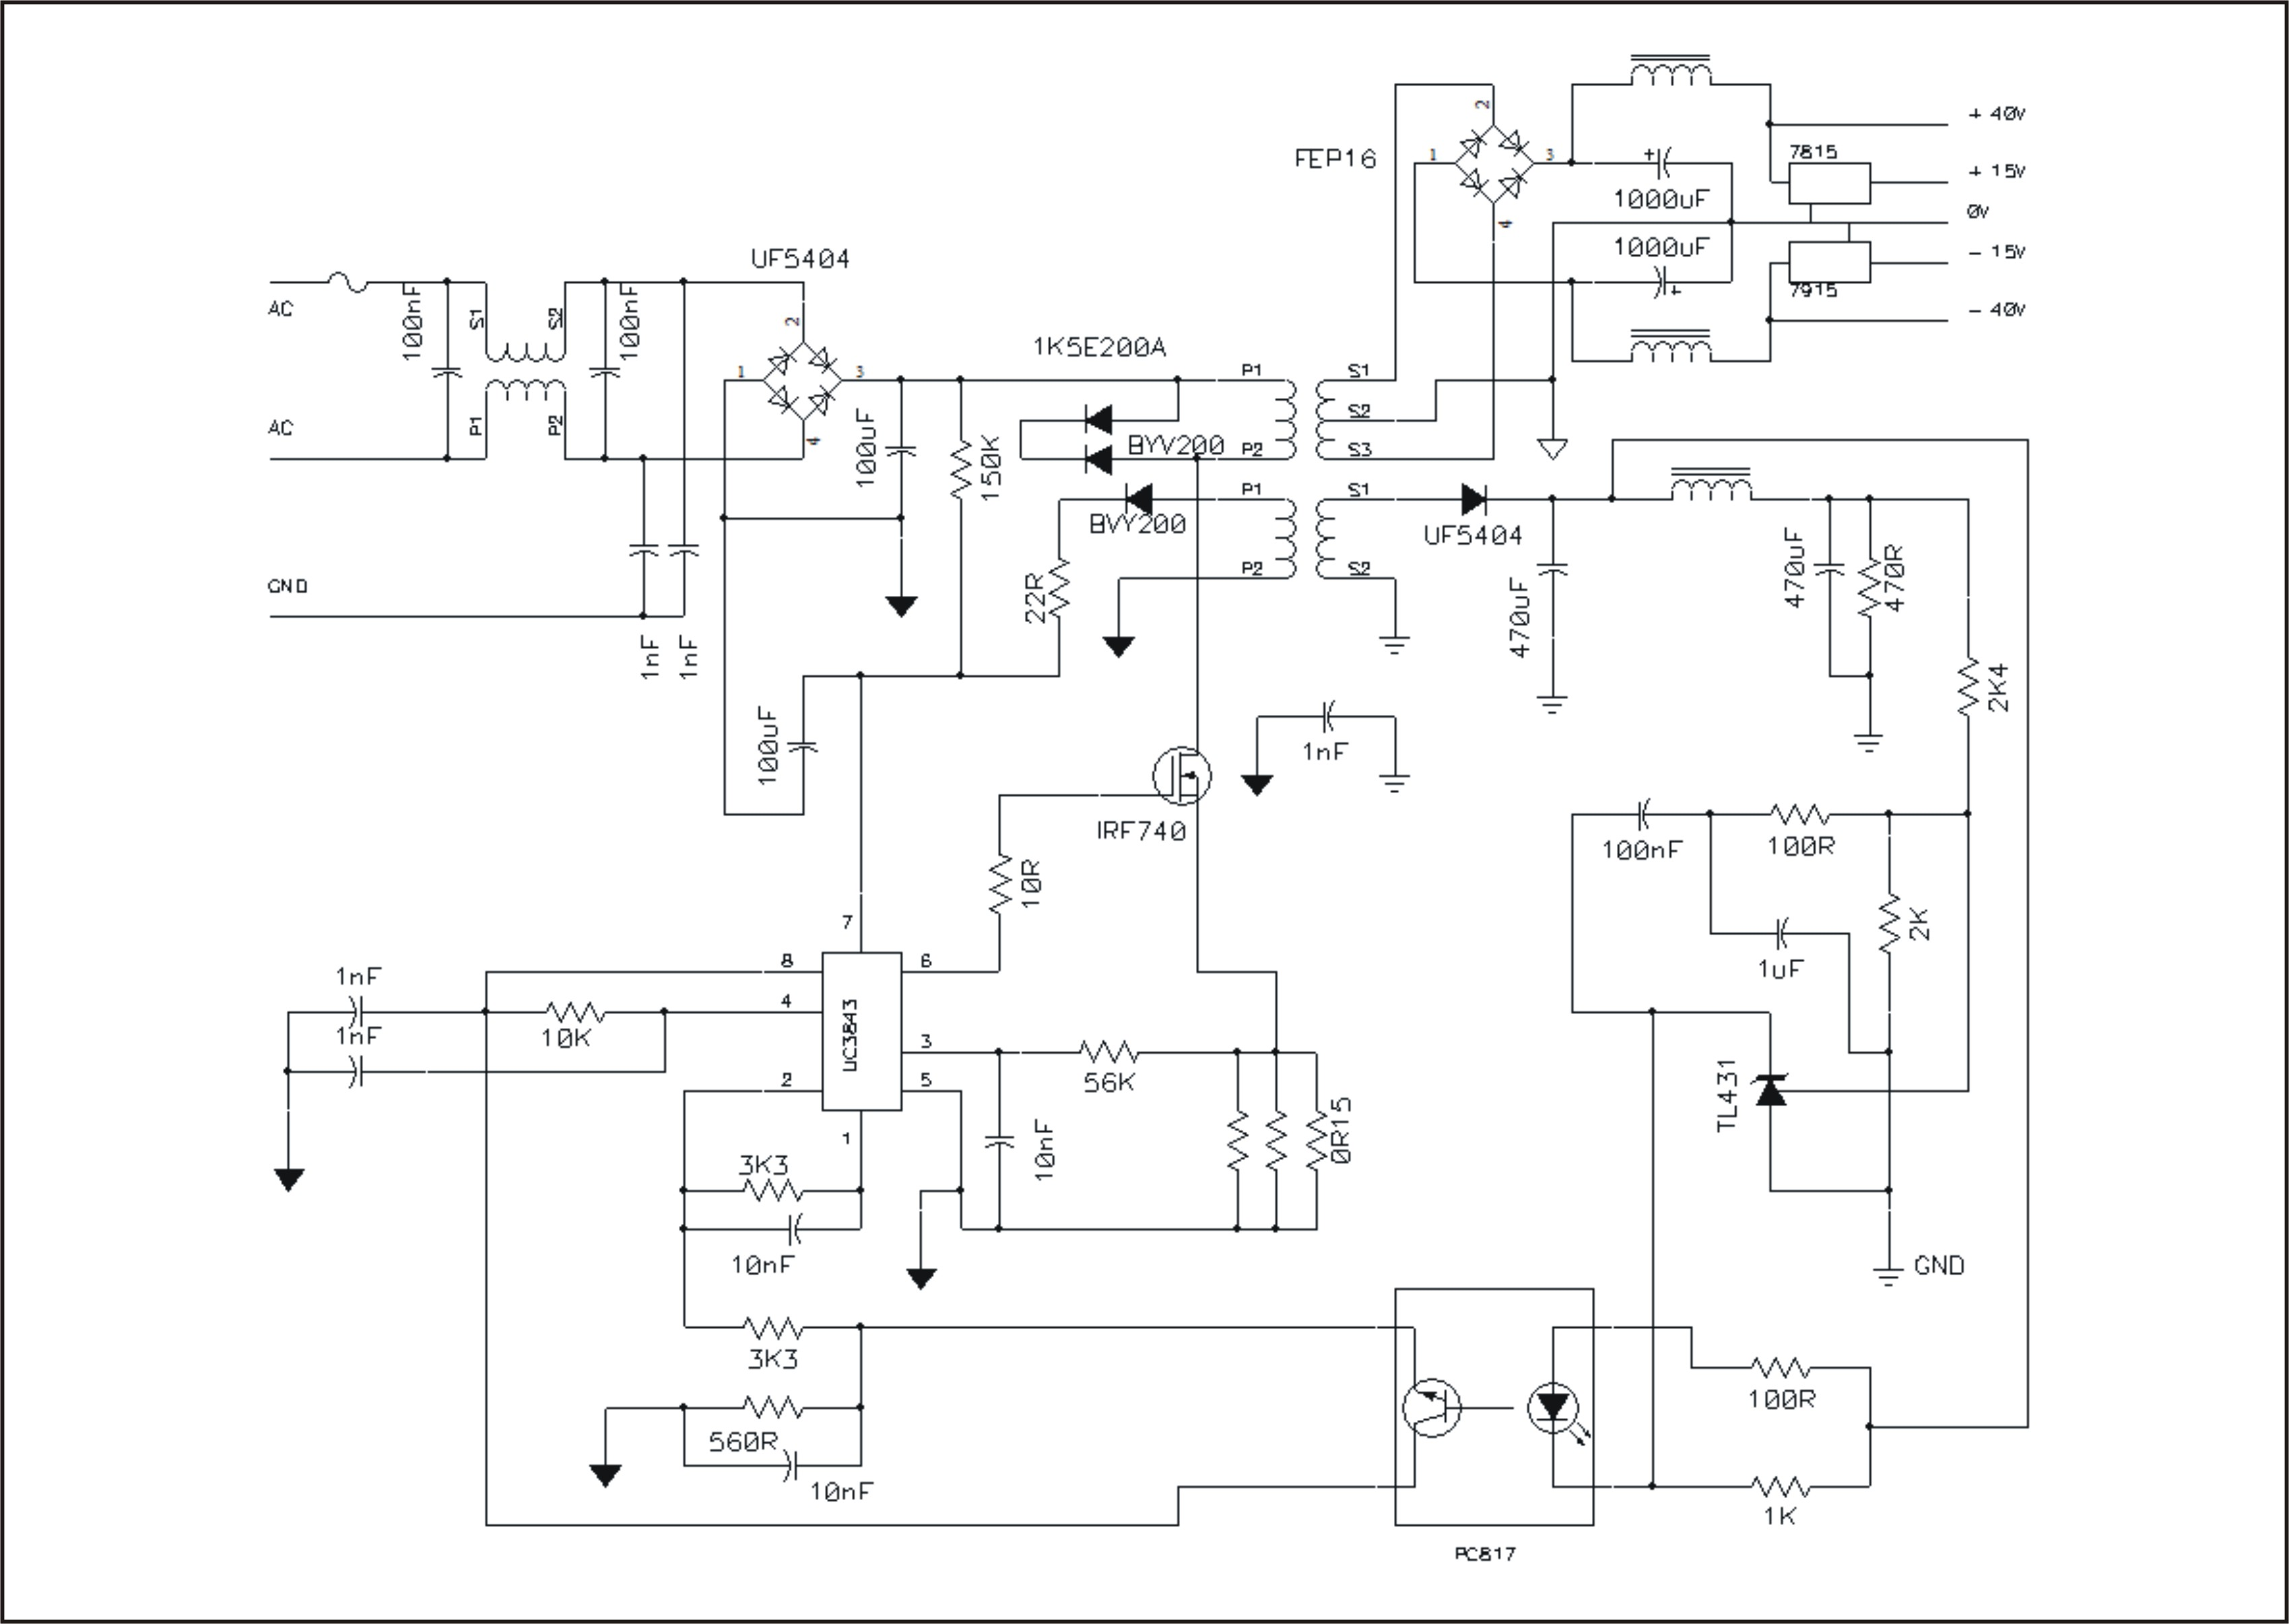 Search moreover Plc Based Multichannel Automatic Liquid Level Controller in addition Multiple PSUs Share Load together with Samsung Bn96 0b Lcd Tv Smps Schematic moreover Lg Lst 3510a Set Top Box Circuit Diagram. on smps circuit diagram